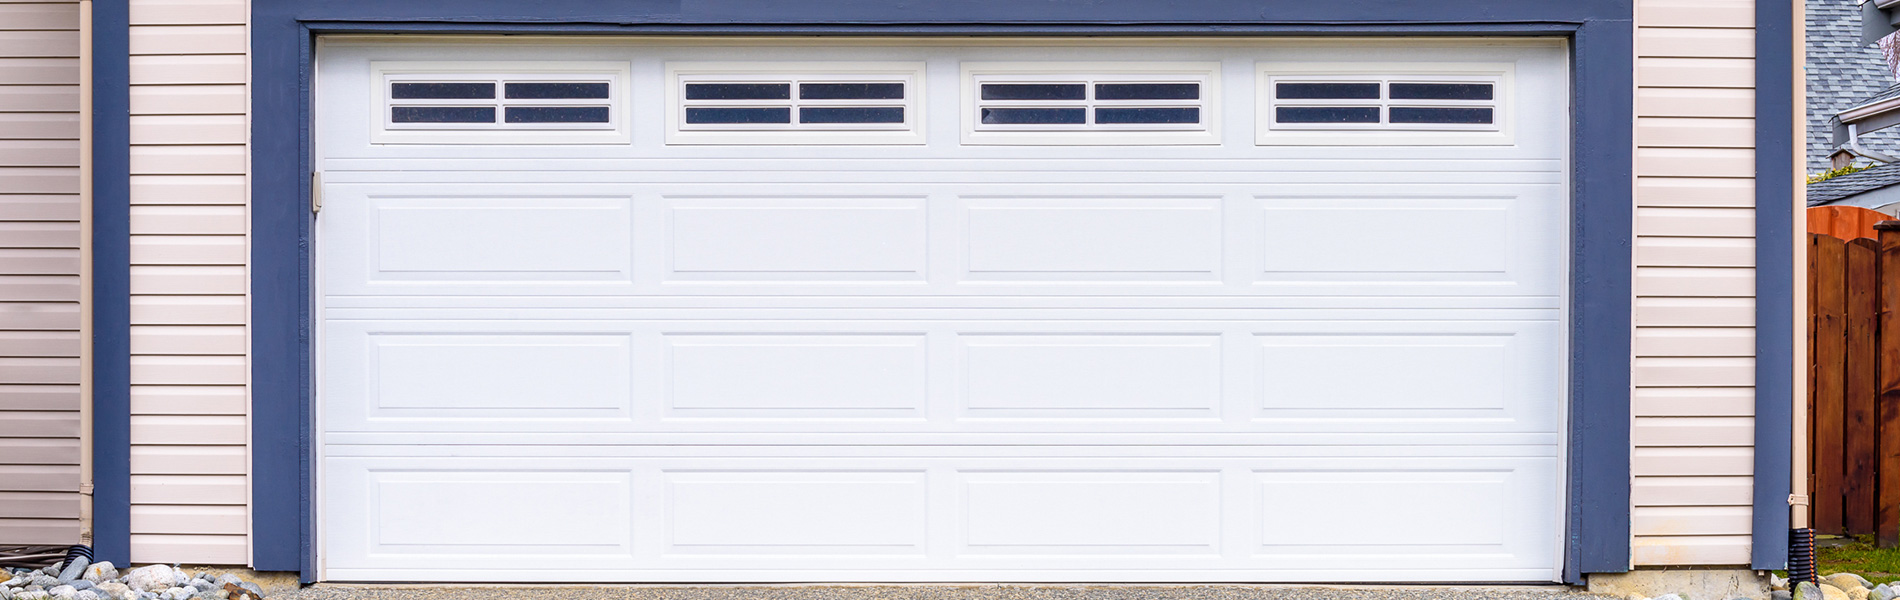 Metro Garage Door Service, Marysville, WA 360-449-6199